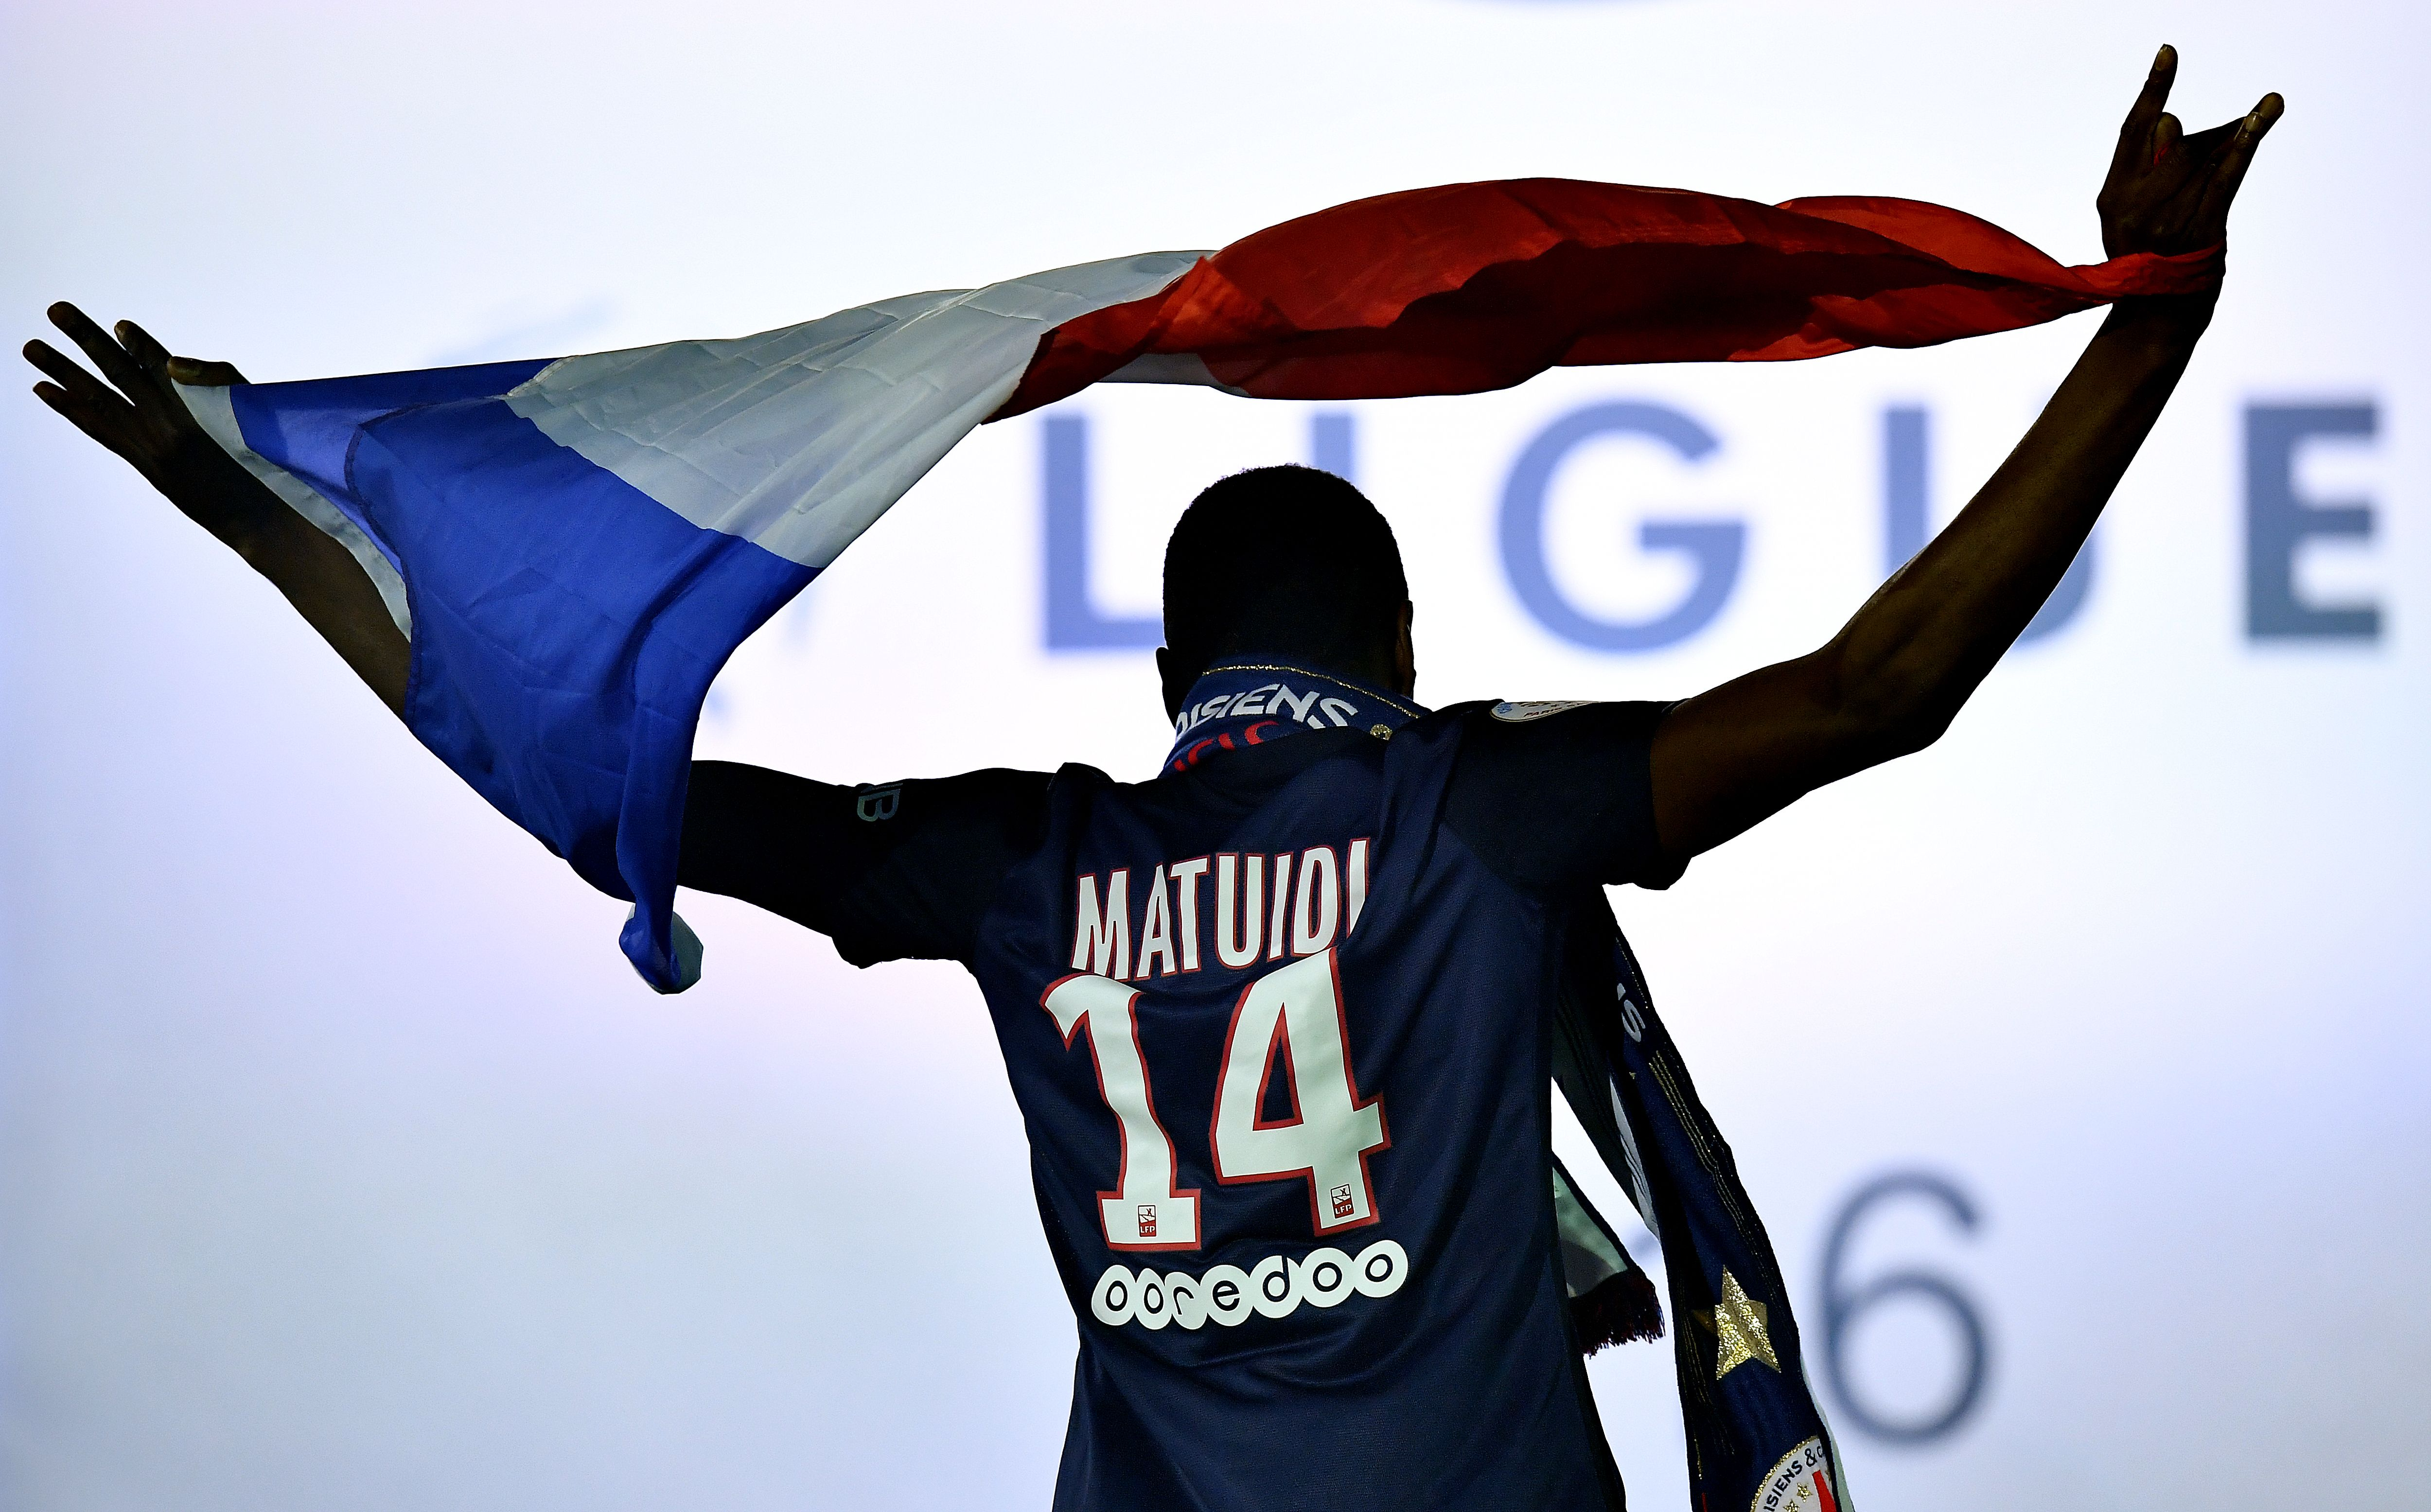 Paris Saint-Germain's French midfielder Blaise Matuidi arrives on the podium after winning the French L1 title at the end of the French L1 football match Paris Saint-Germain (PSG) vs Nantes on May 14, 2016 at the Parc des Princes stadium in Paris.    / AFP / FRANCK FIFE        (Photo credit should read FRANCK FIFE/AFP/Getty Images)